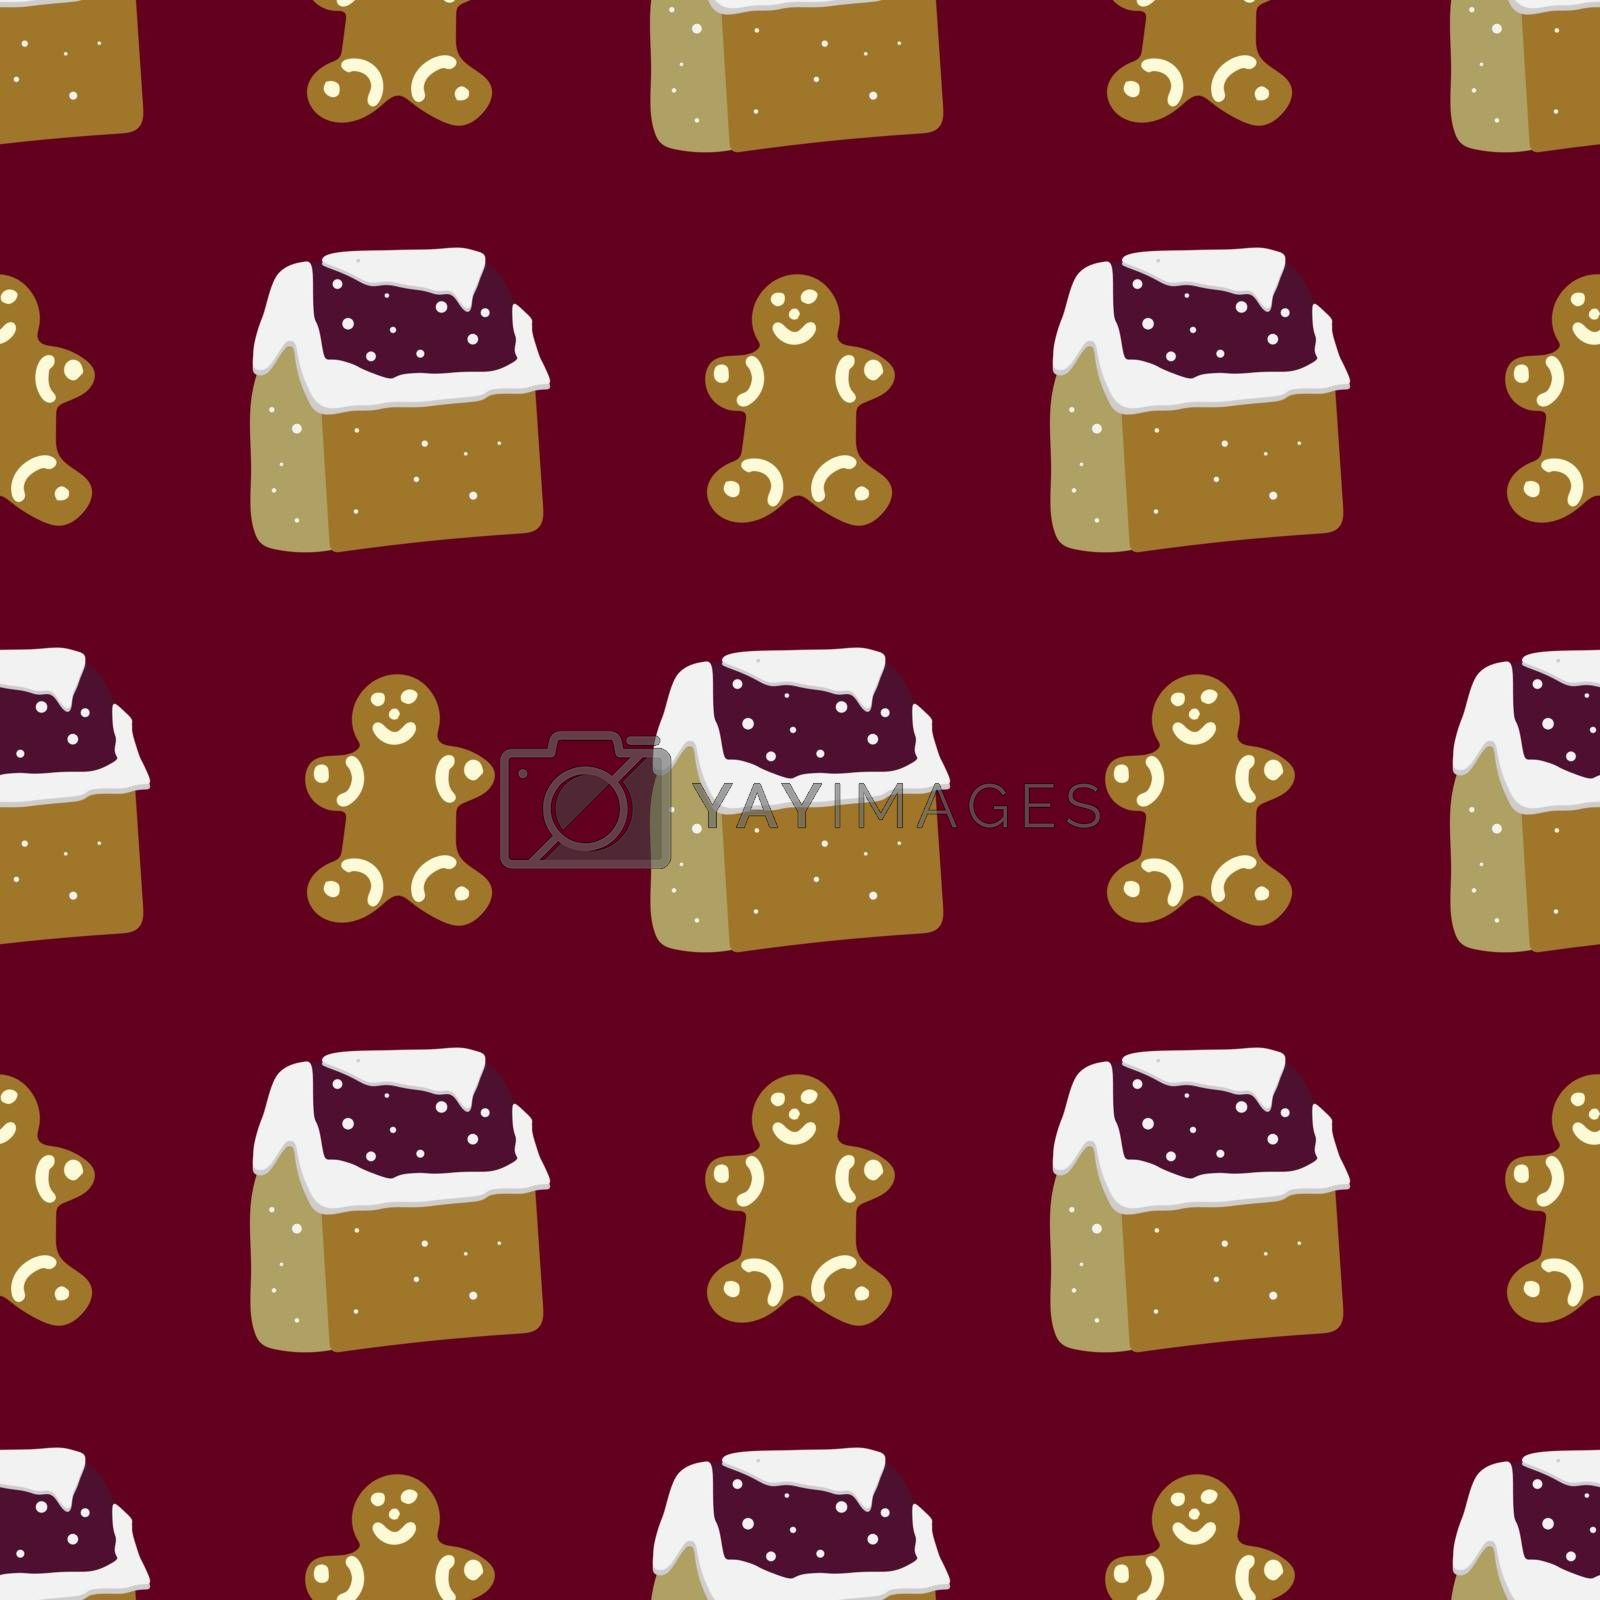 Royalty free image of Gingerbread man and christmas tree seamless pattern on burgundy  by Nata_Prando